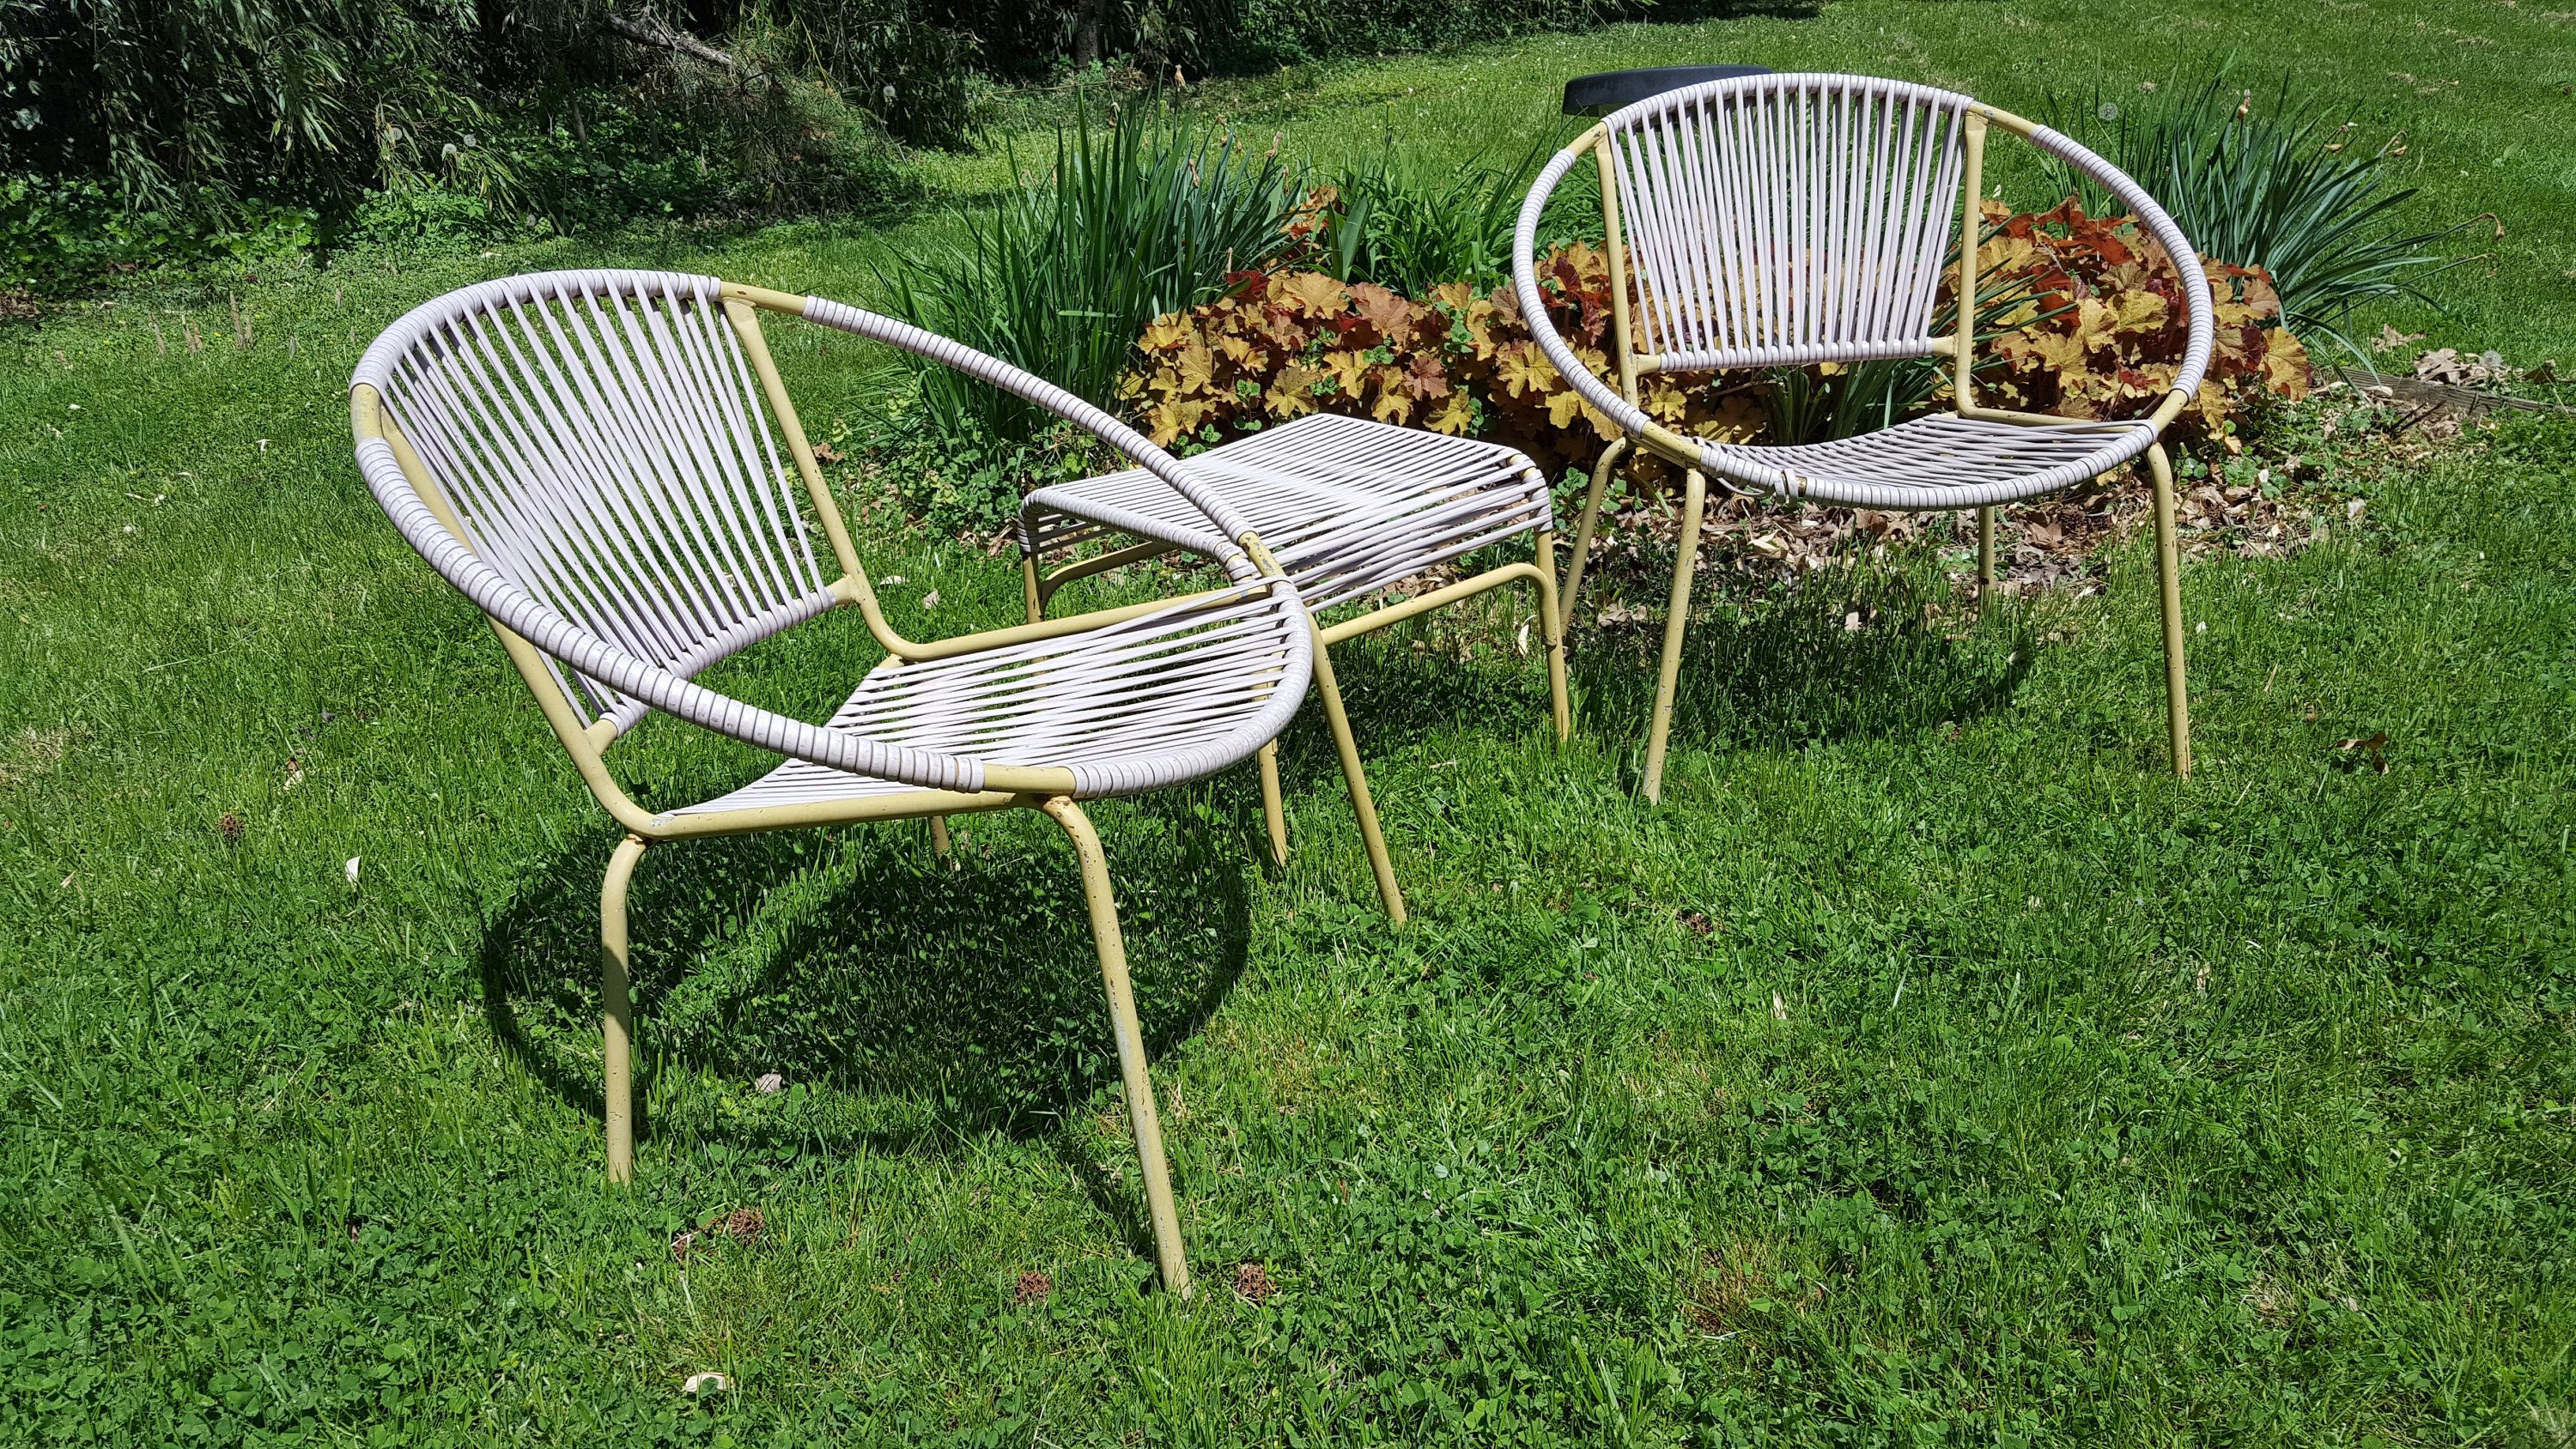 Vintage Patio Furniture By Ames Aire Mid Century Modern Patio Furniture Sling Chairs Mid Century Modern Patio Furniture Modern Patio Furniture Vintage Patio